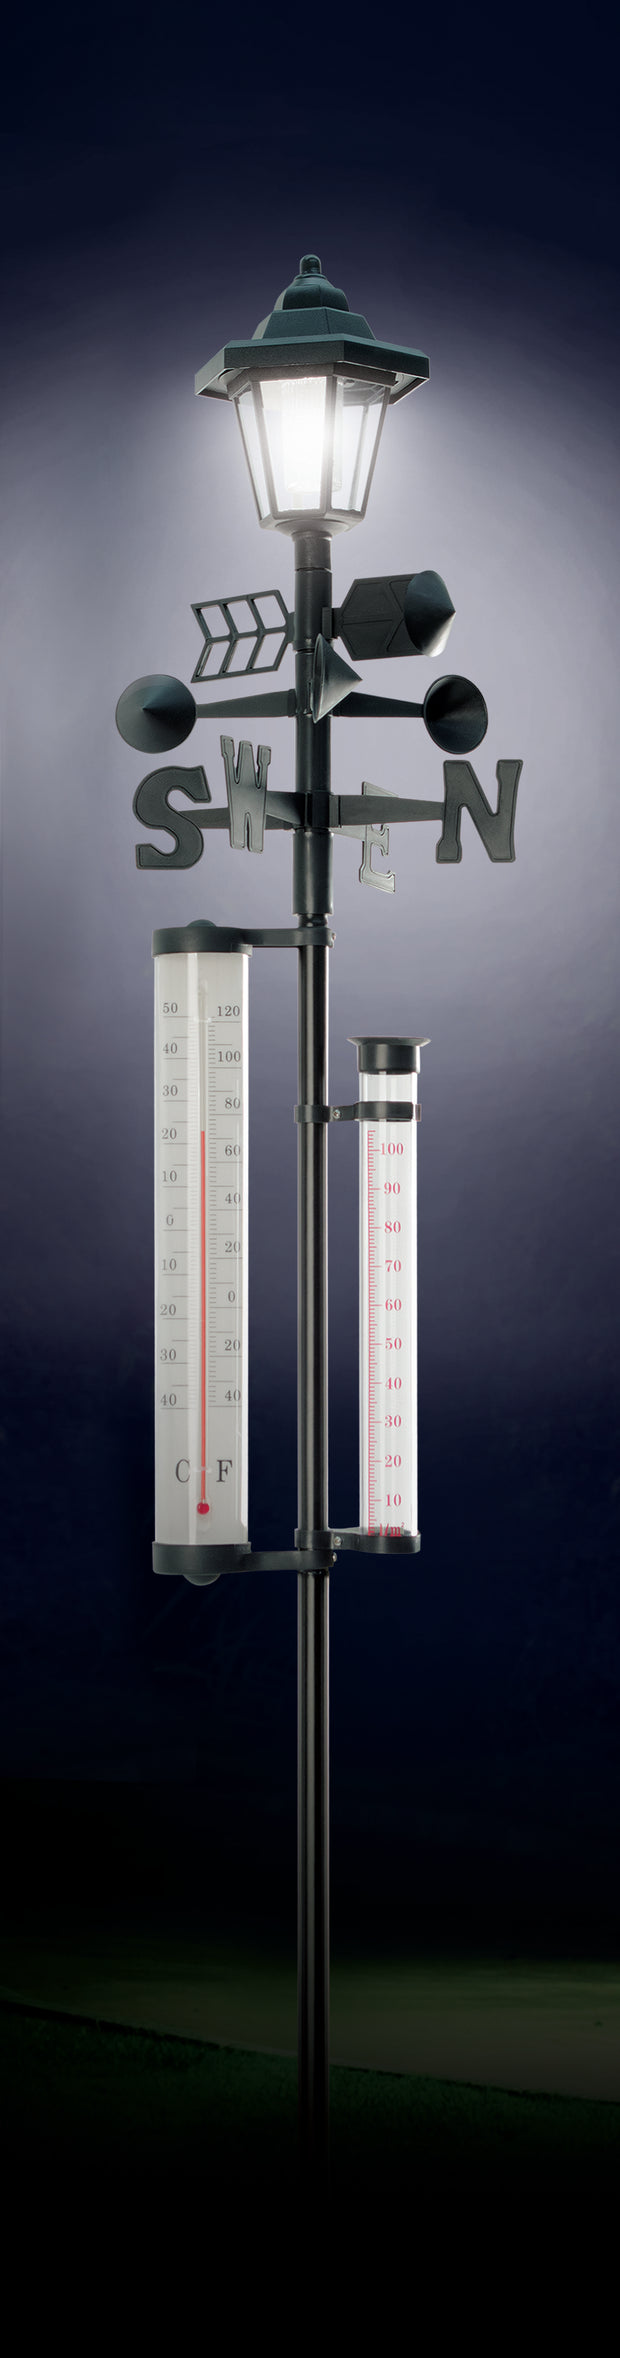 IdeaWorks - All In 1 Weather Station